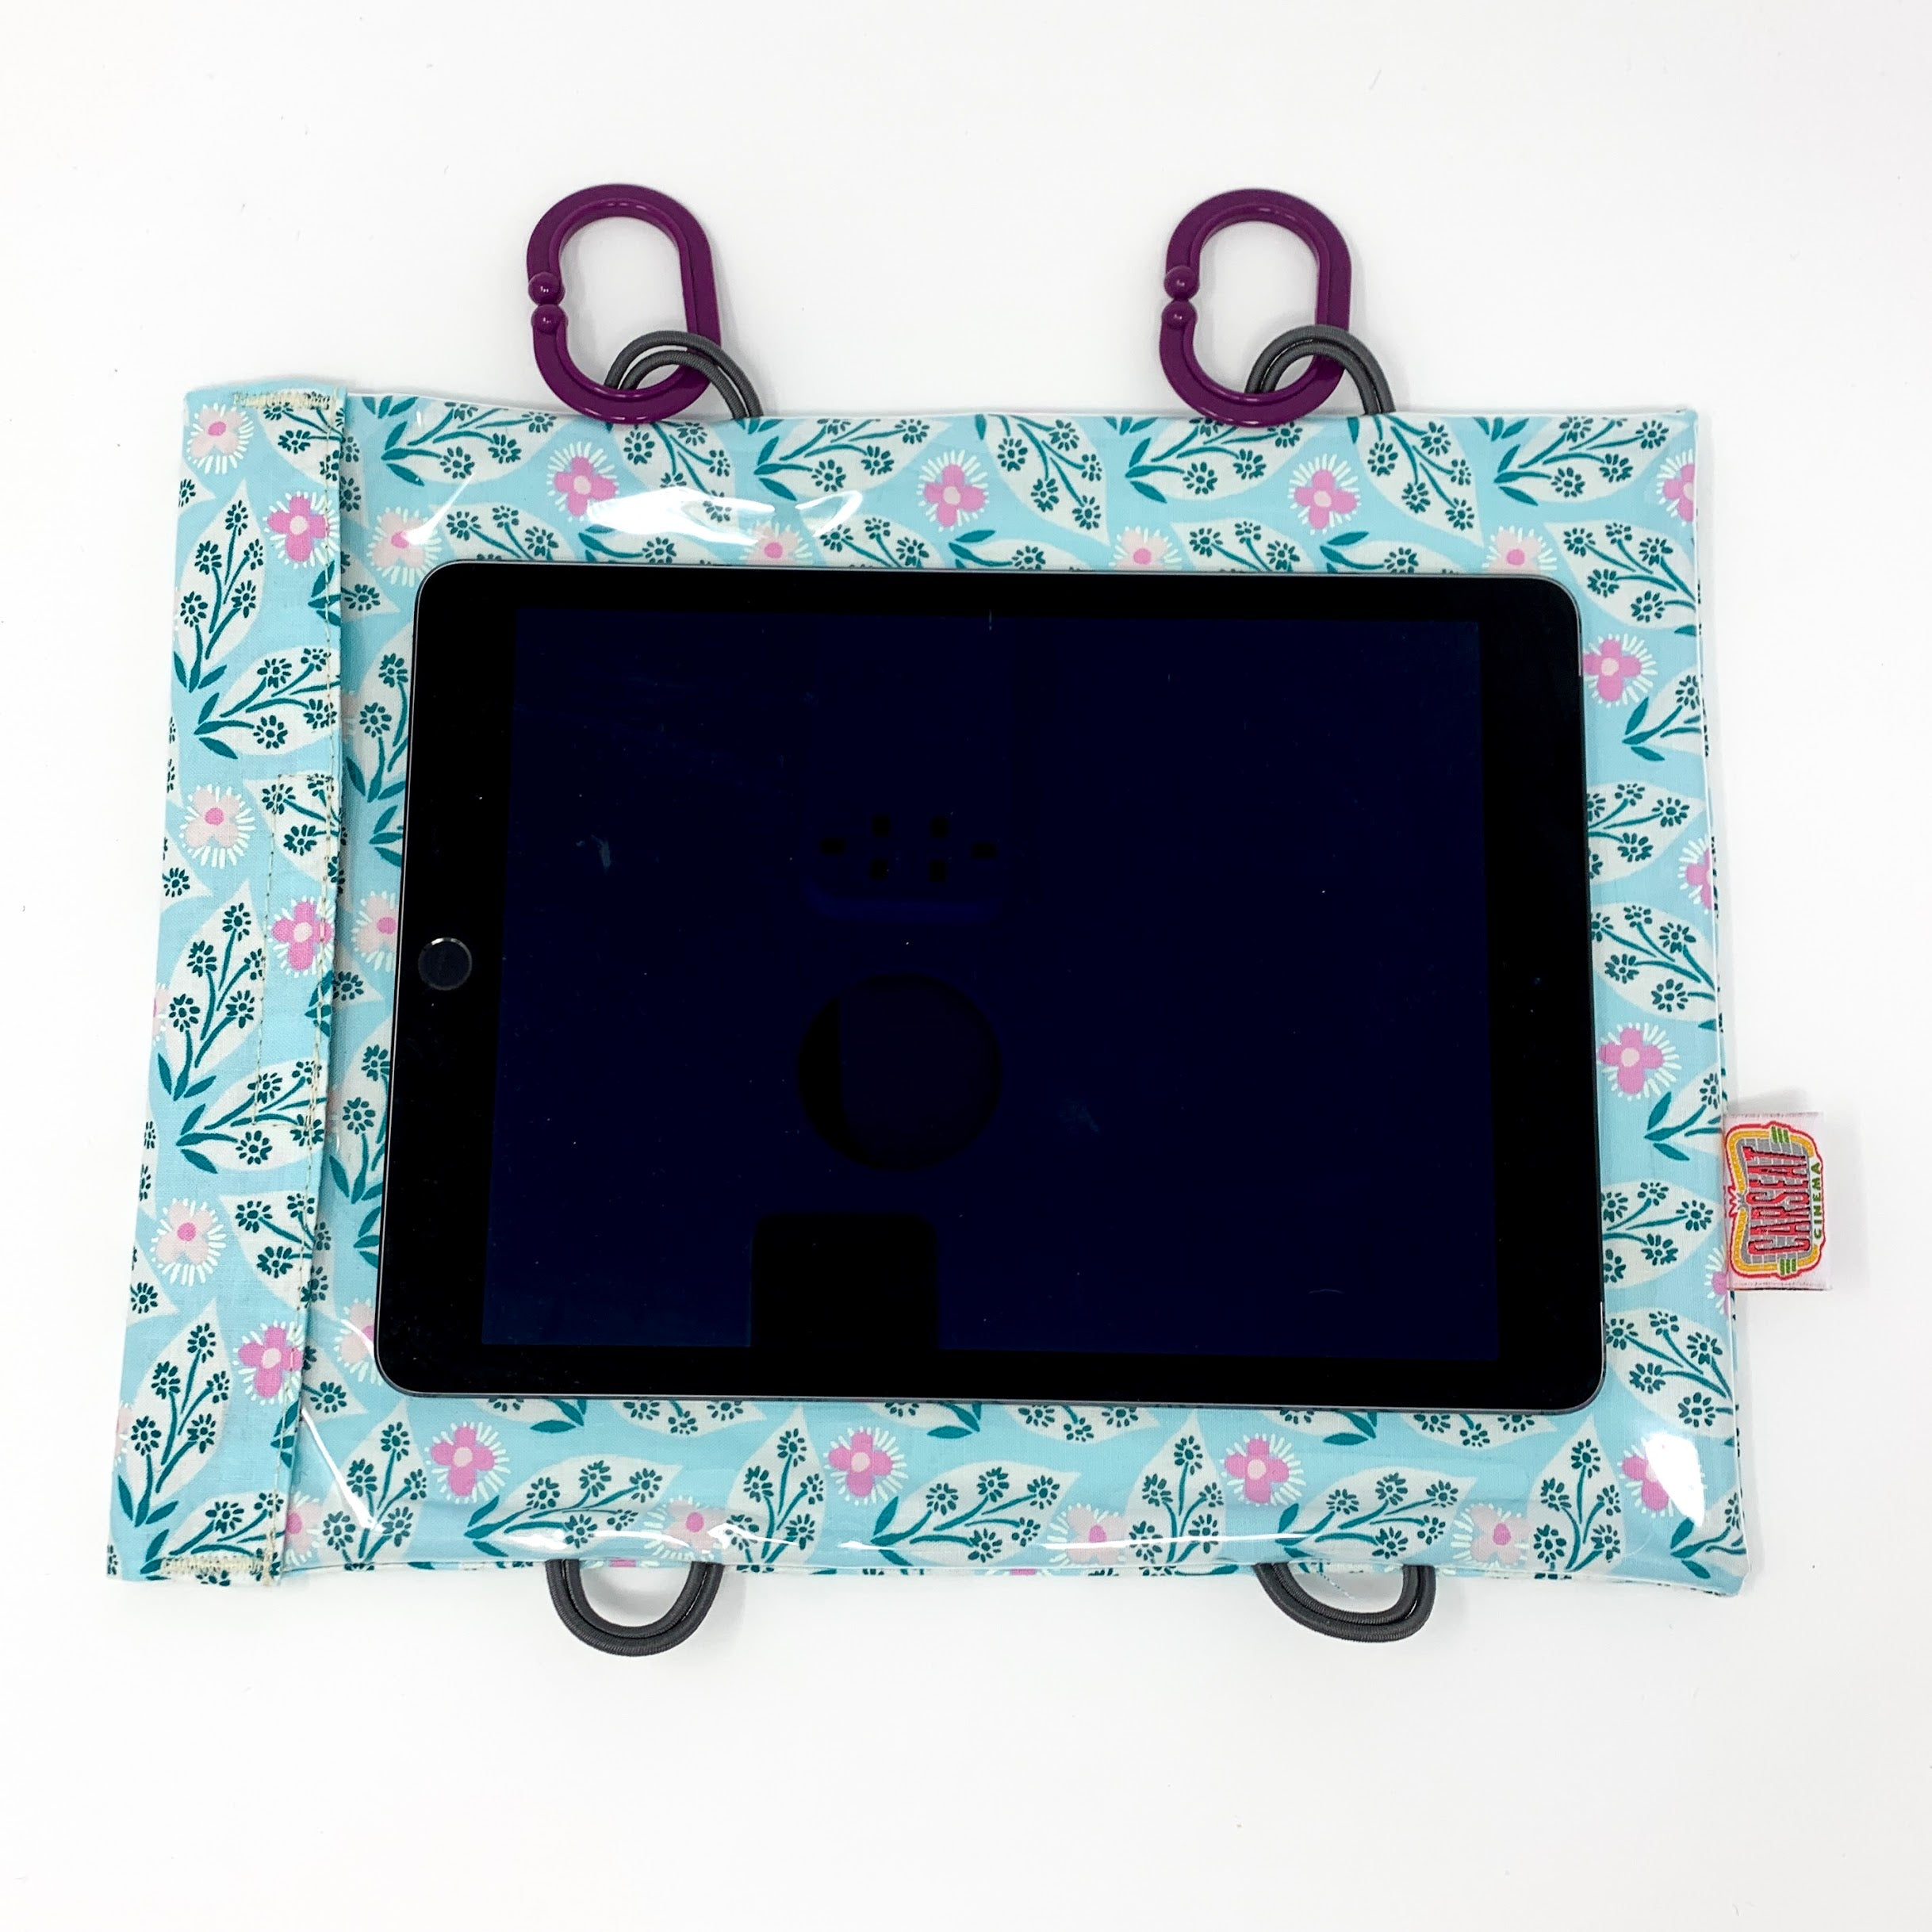 Pale Vines Tablet Case